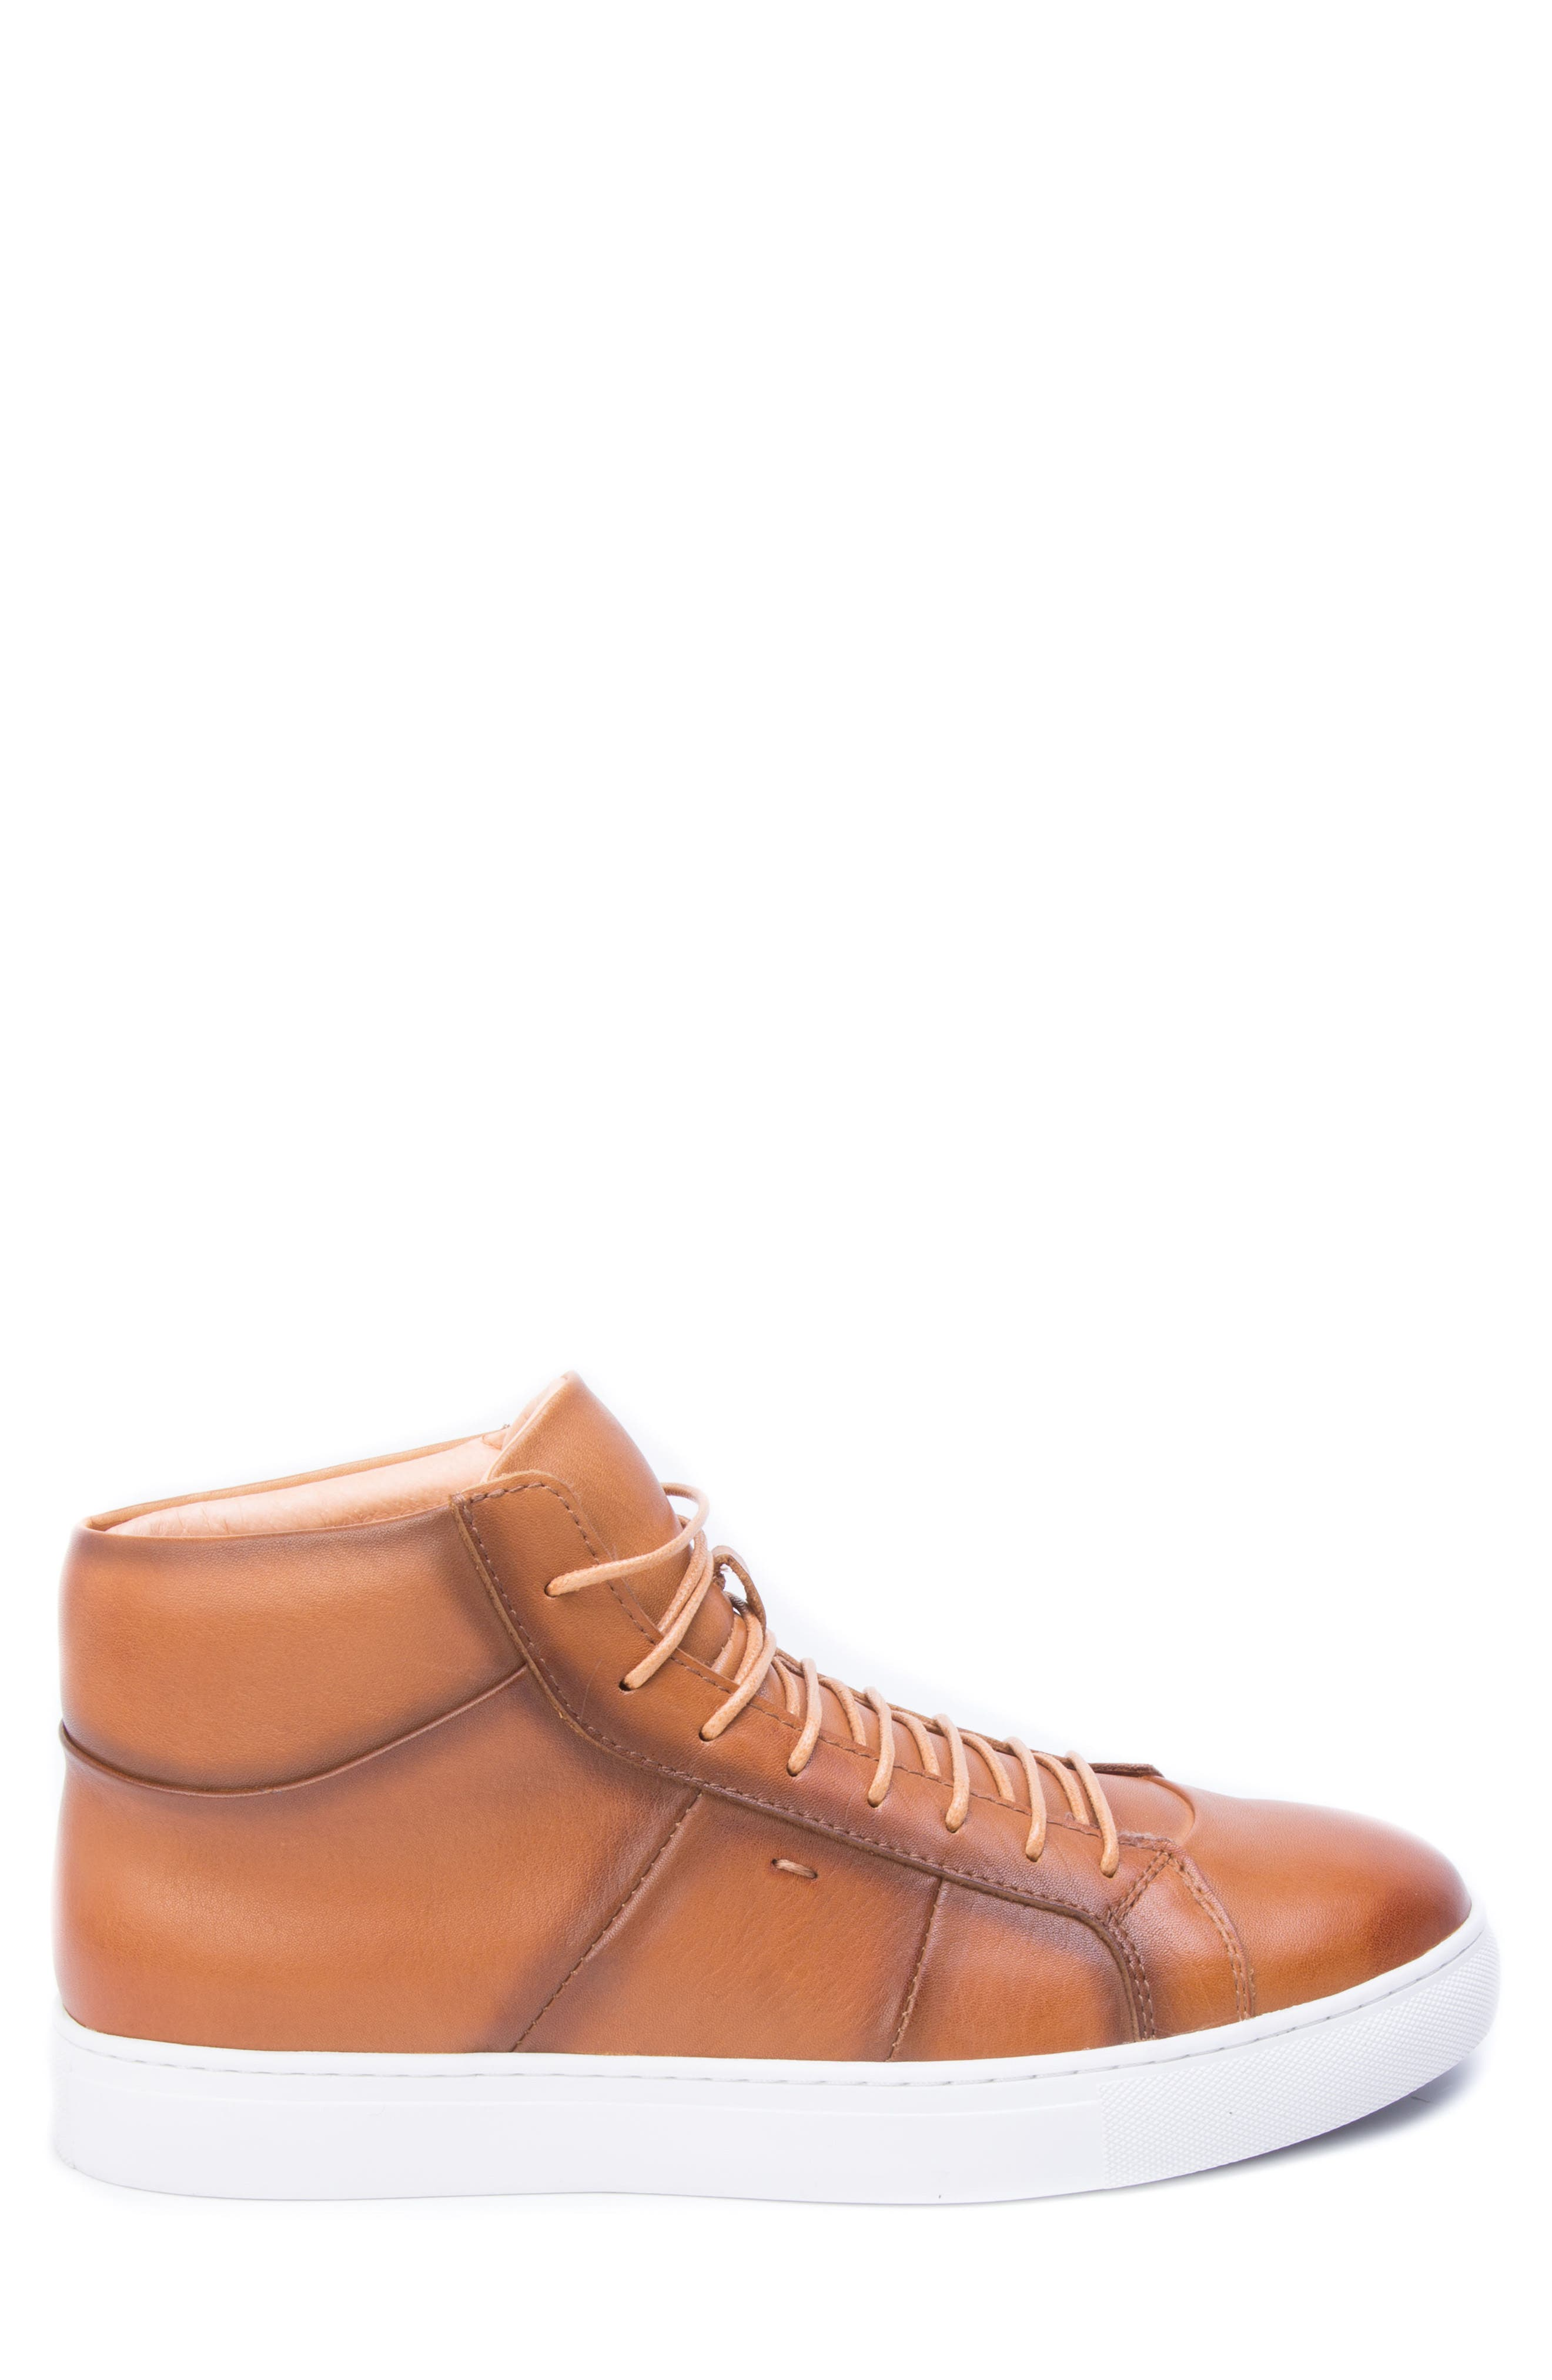 Phaser High Top Sneaker,                             Alternate thumbnail 3, color,                             Cognac Leather